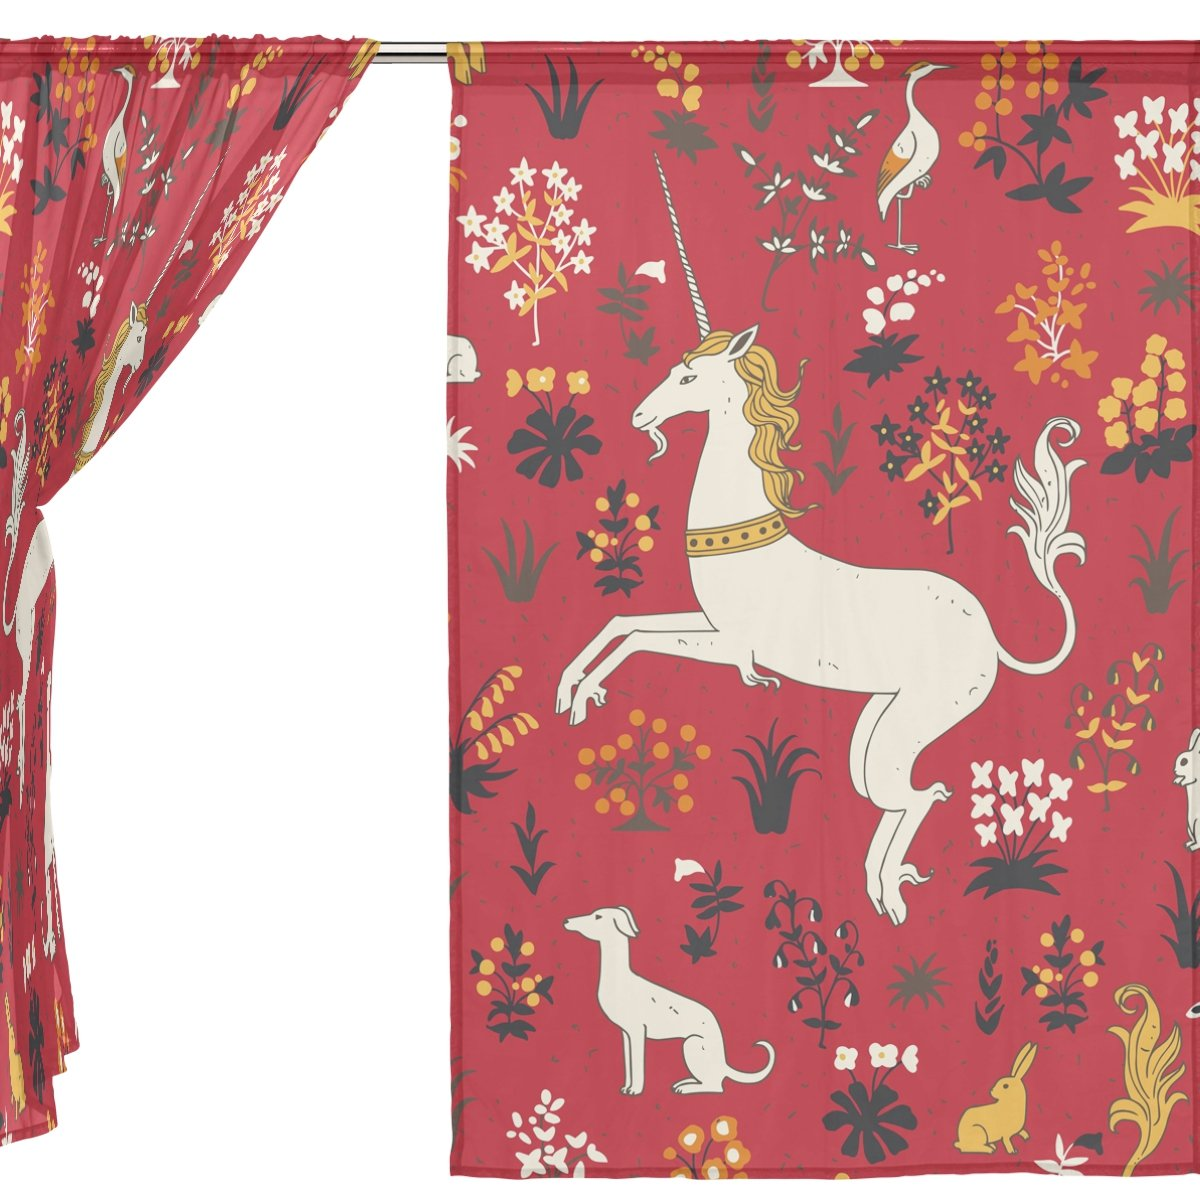 SEULIFE Window Sheer Curtain, Vintage Animal Unicorn Rabbit Flower Voile Curtain Drapes for Door Kitchen Living Room Bedroom 55x78 inches 2 Panels by SEULIFE (Image #3)